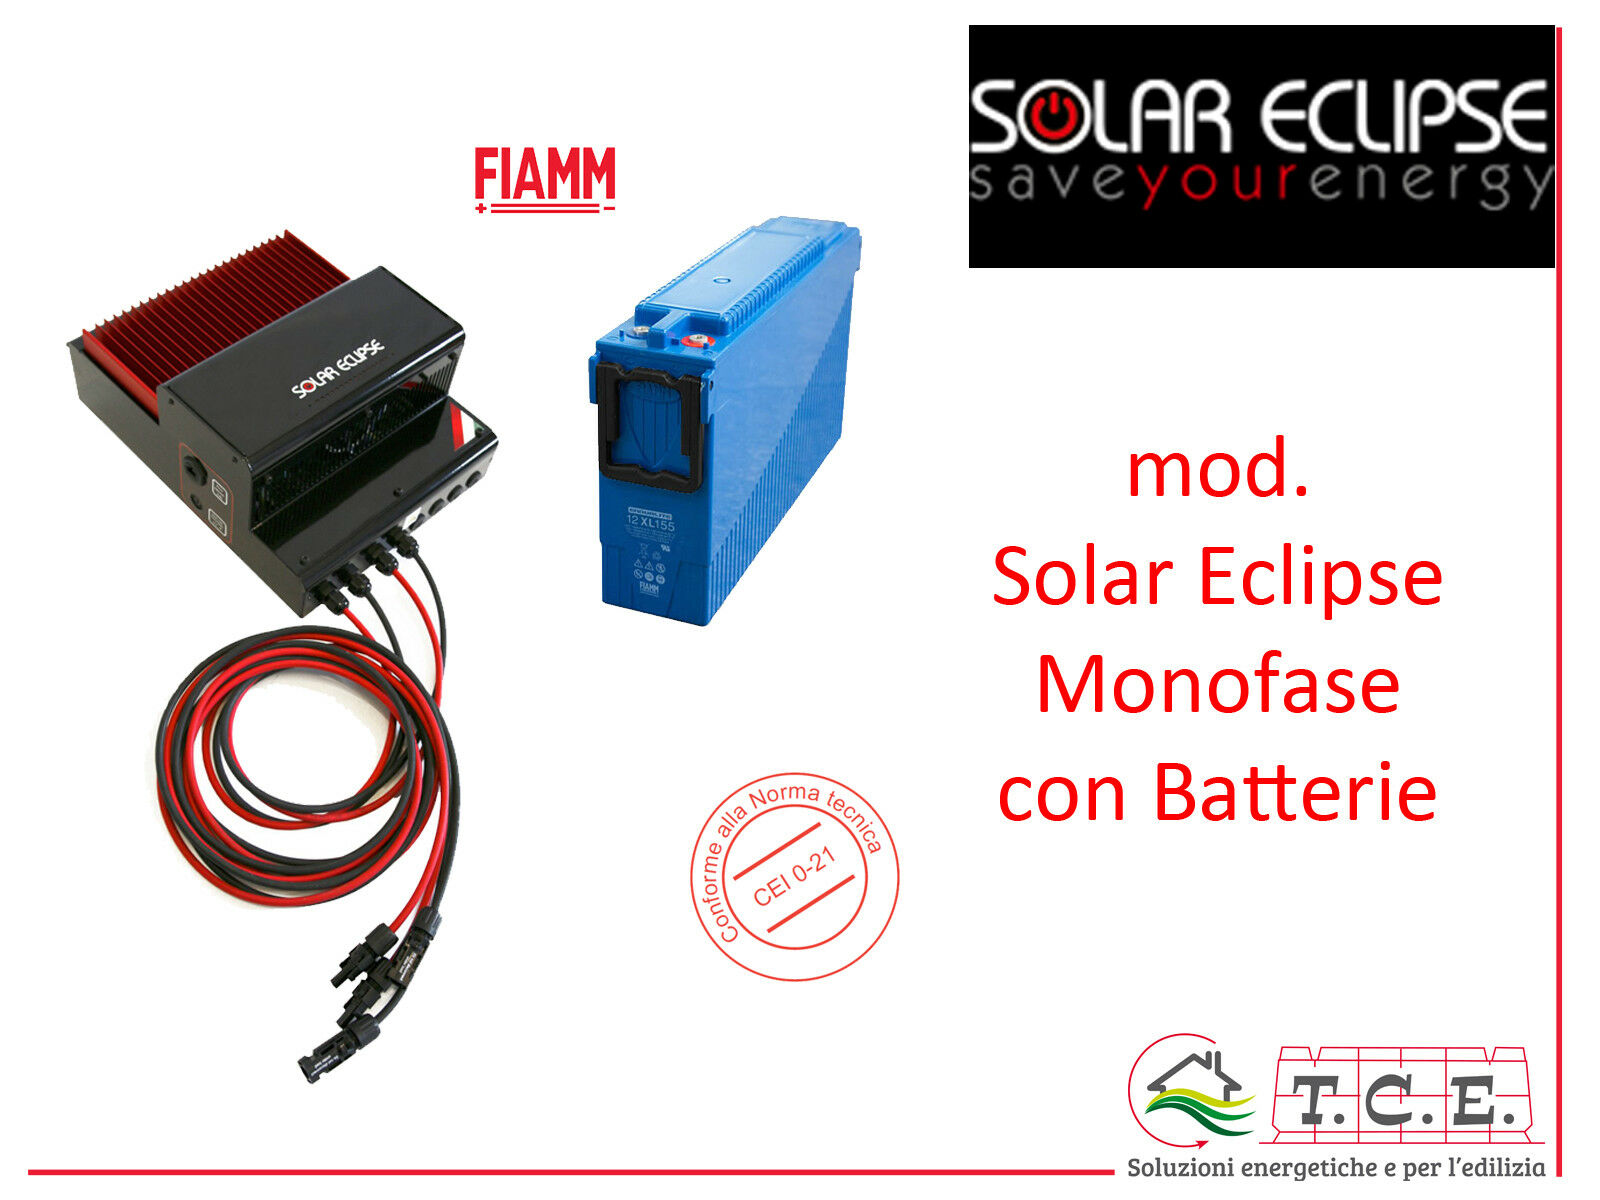 System of accumulation Storage Solar Eclipse Photovoltaic single phase with Batteries